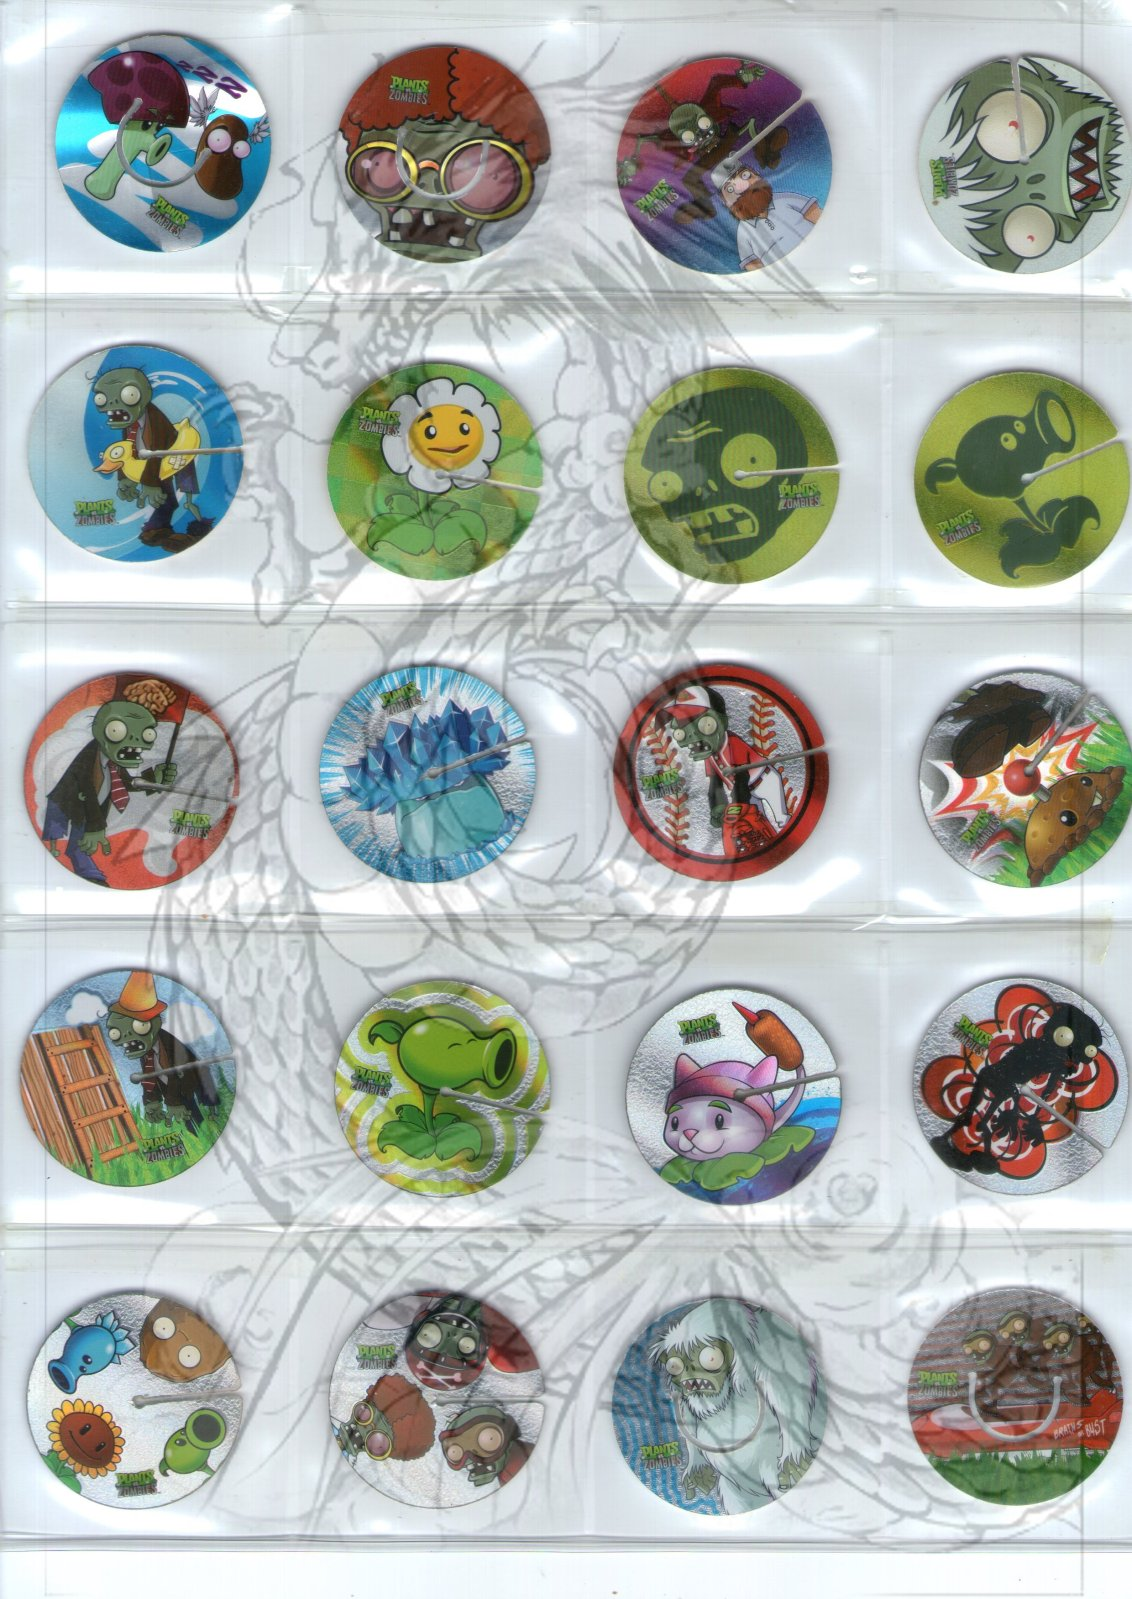 Tazos Plantas Vs Zombies de SABRITAS 6941i0